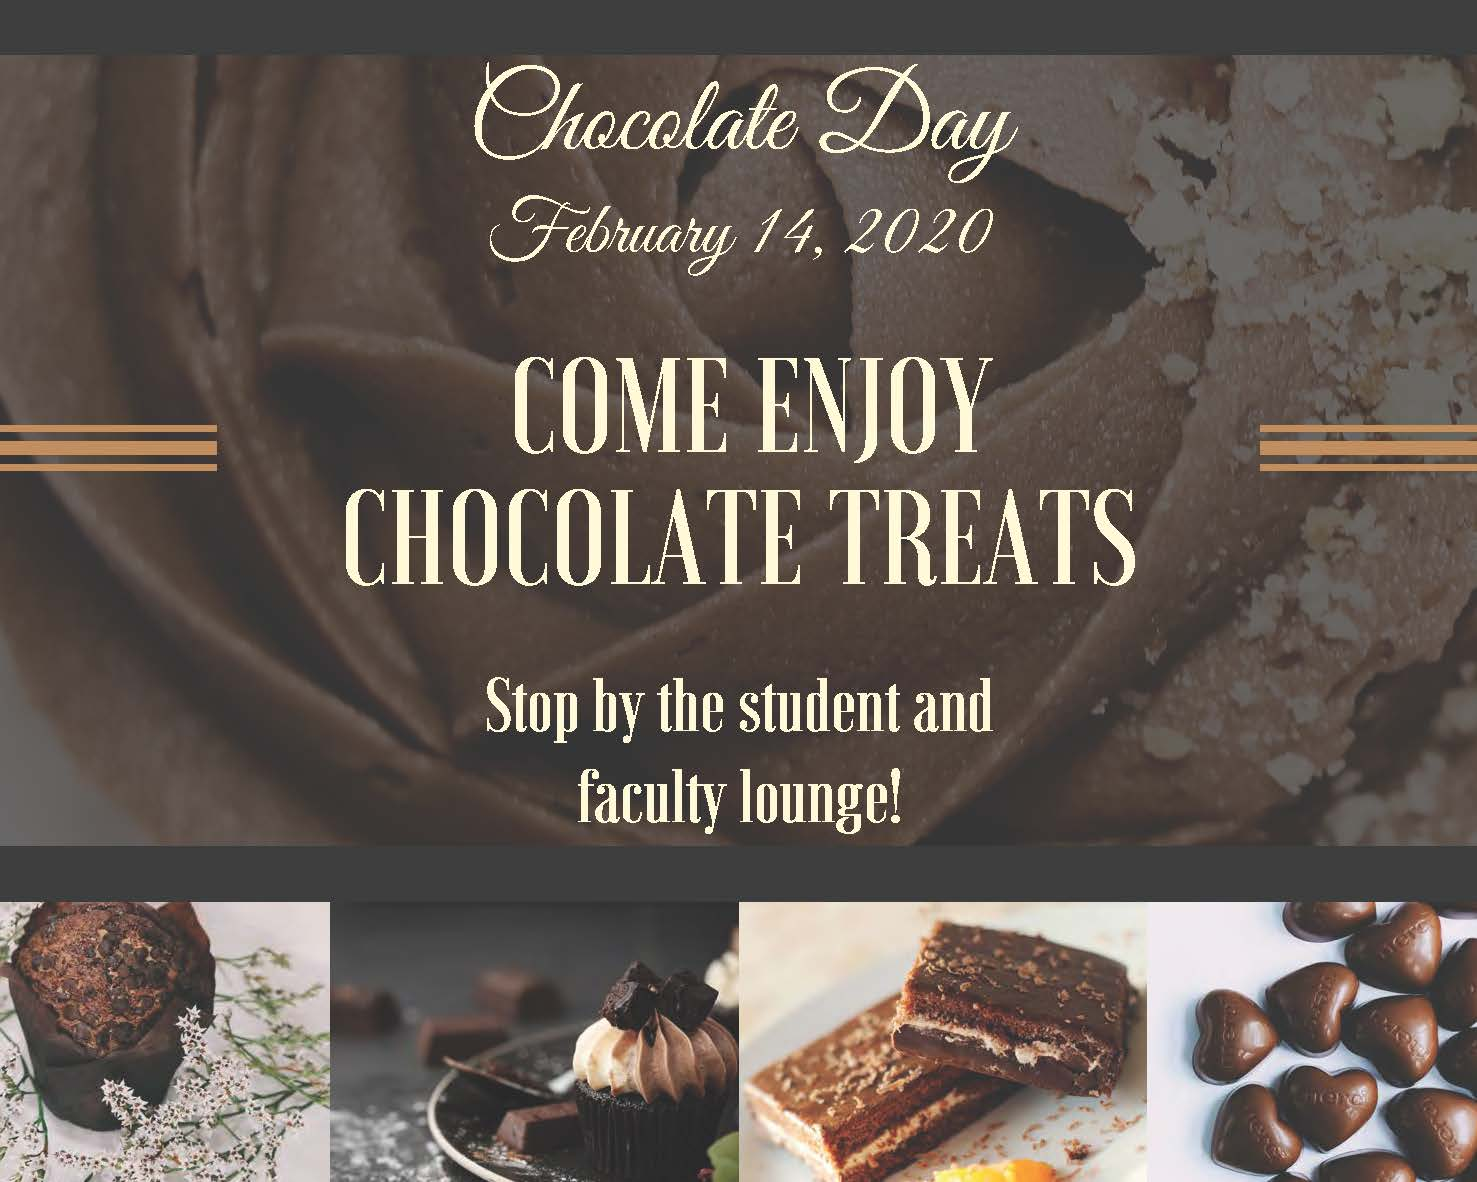 Chocolate Day February 14, 2020. COME ENJOY CHOCOLATE TREATS! Stop by the student and faculty lounge!